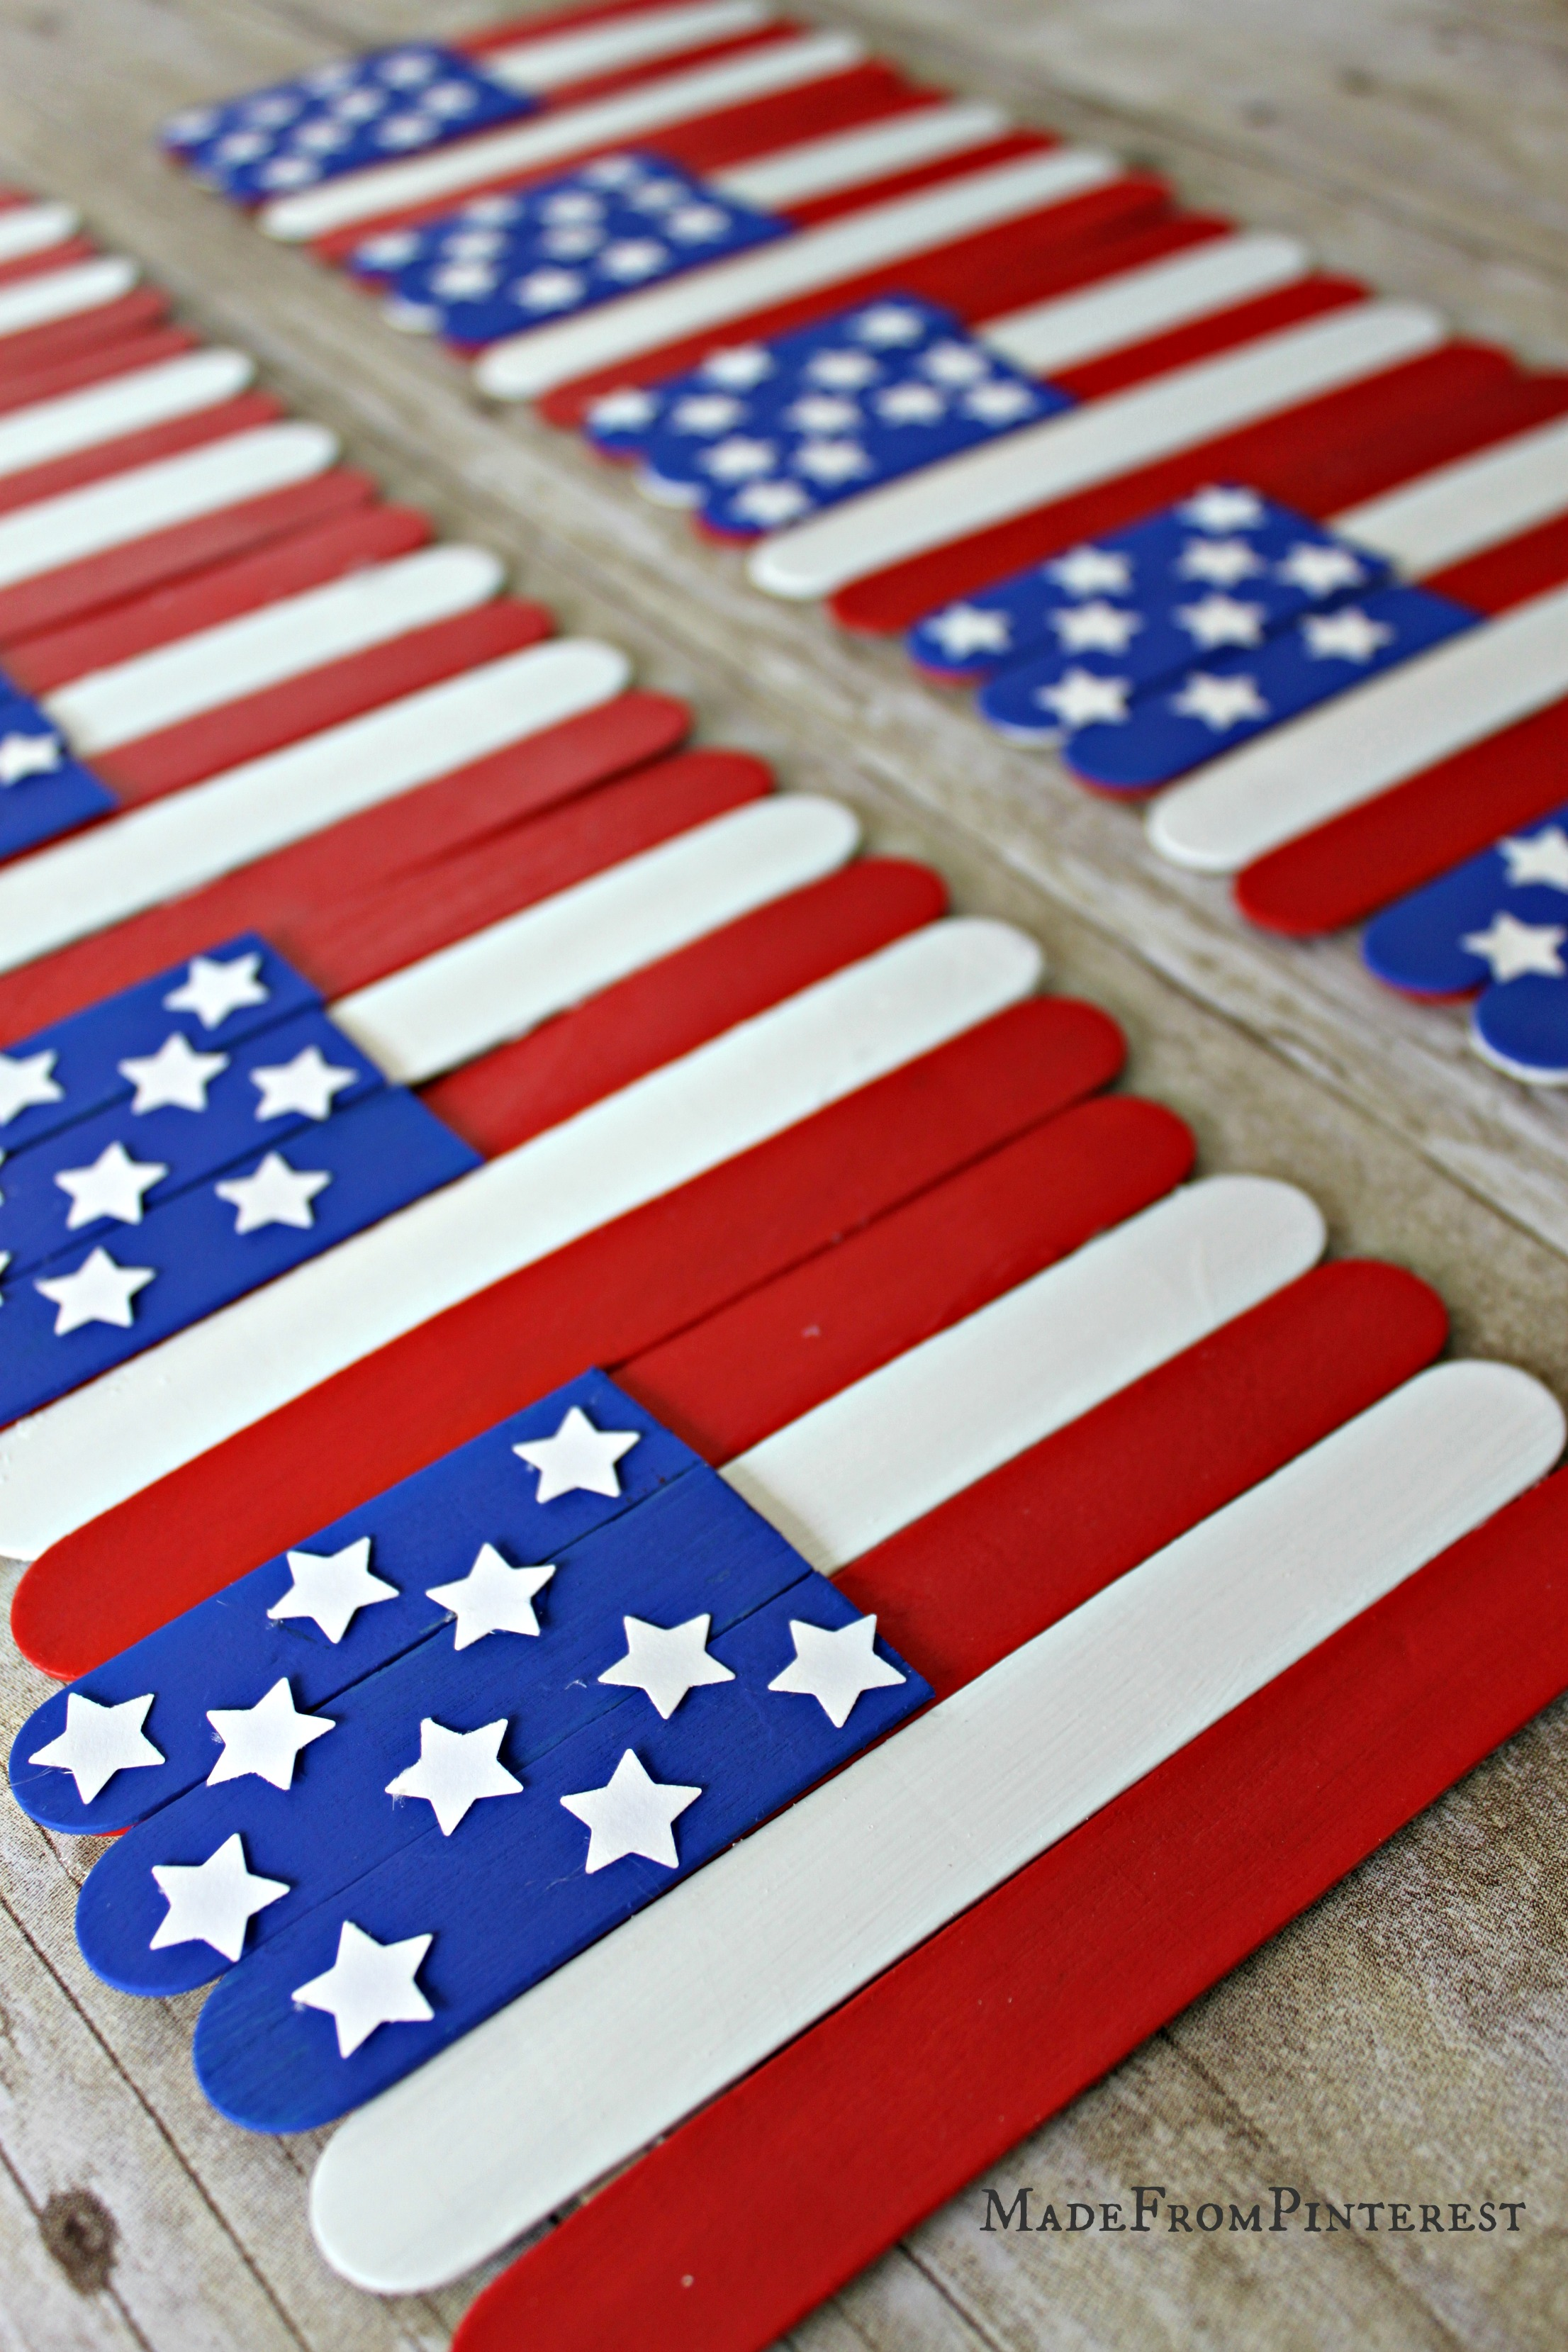 Kids-Flag-Craft-MadeFromPinterest